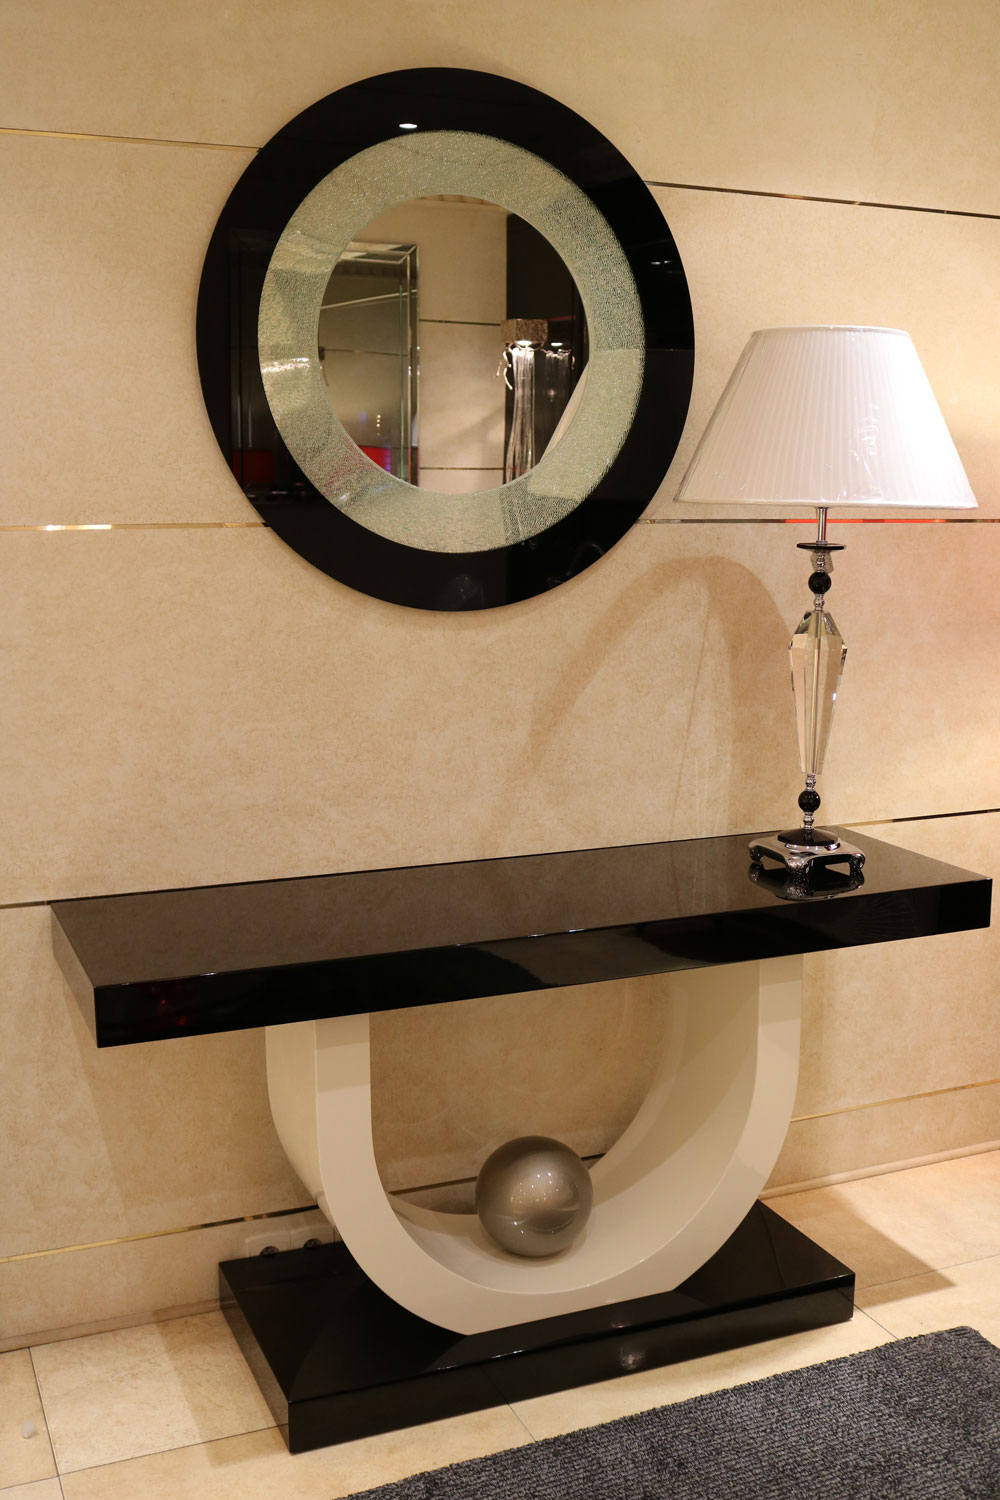 meuble en miroir art deco affordable r vitrine art deco miroir et ferronnerie with meuble en. Black Bedroom Furniture Sets. Home Design Ideas